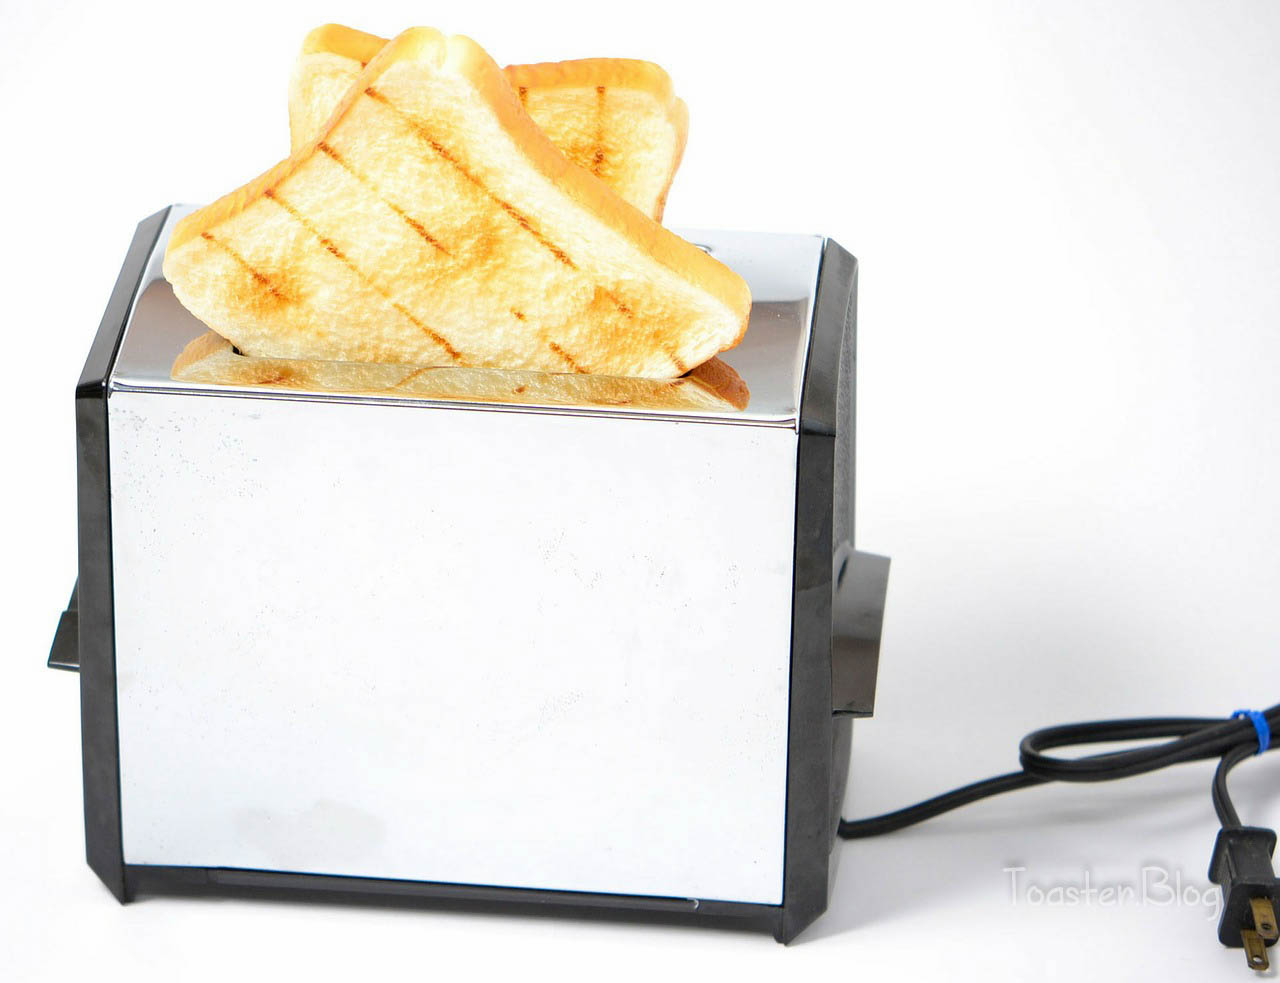 Toaster meaning